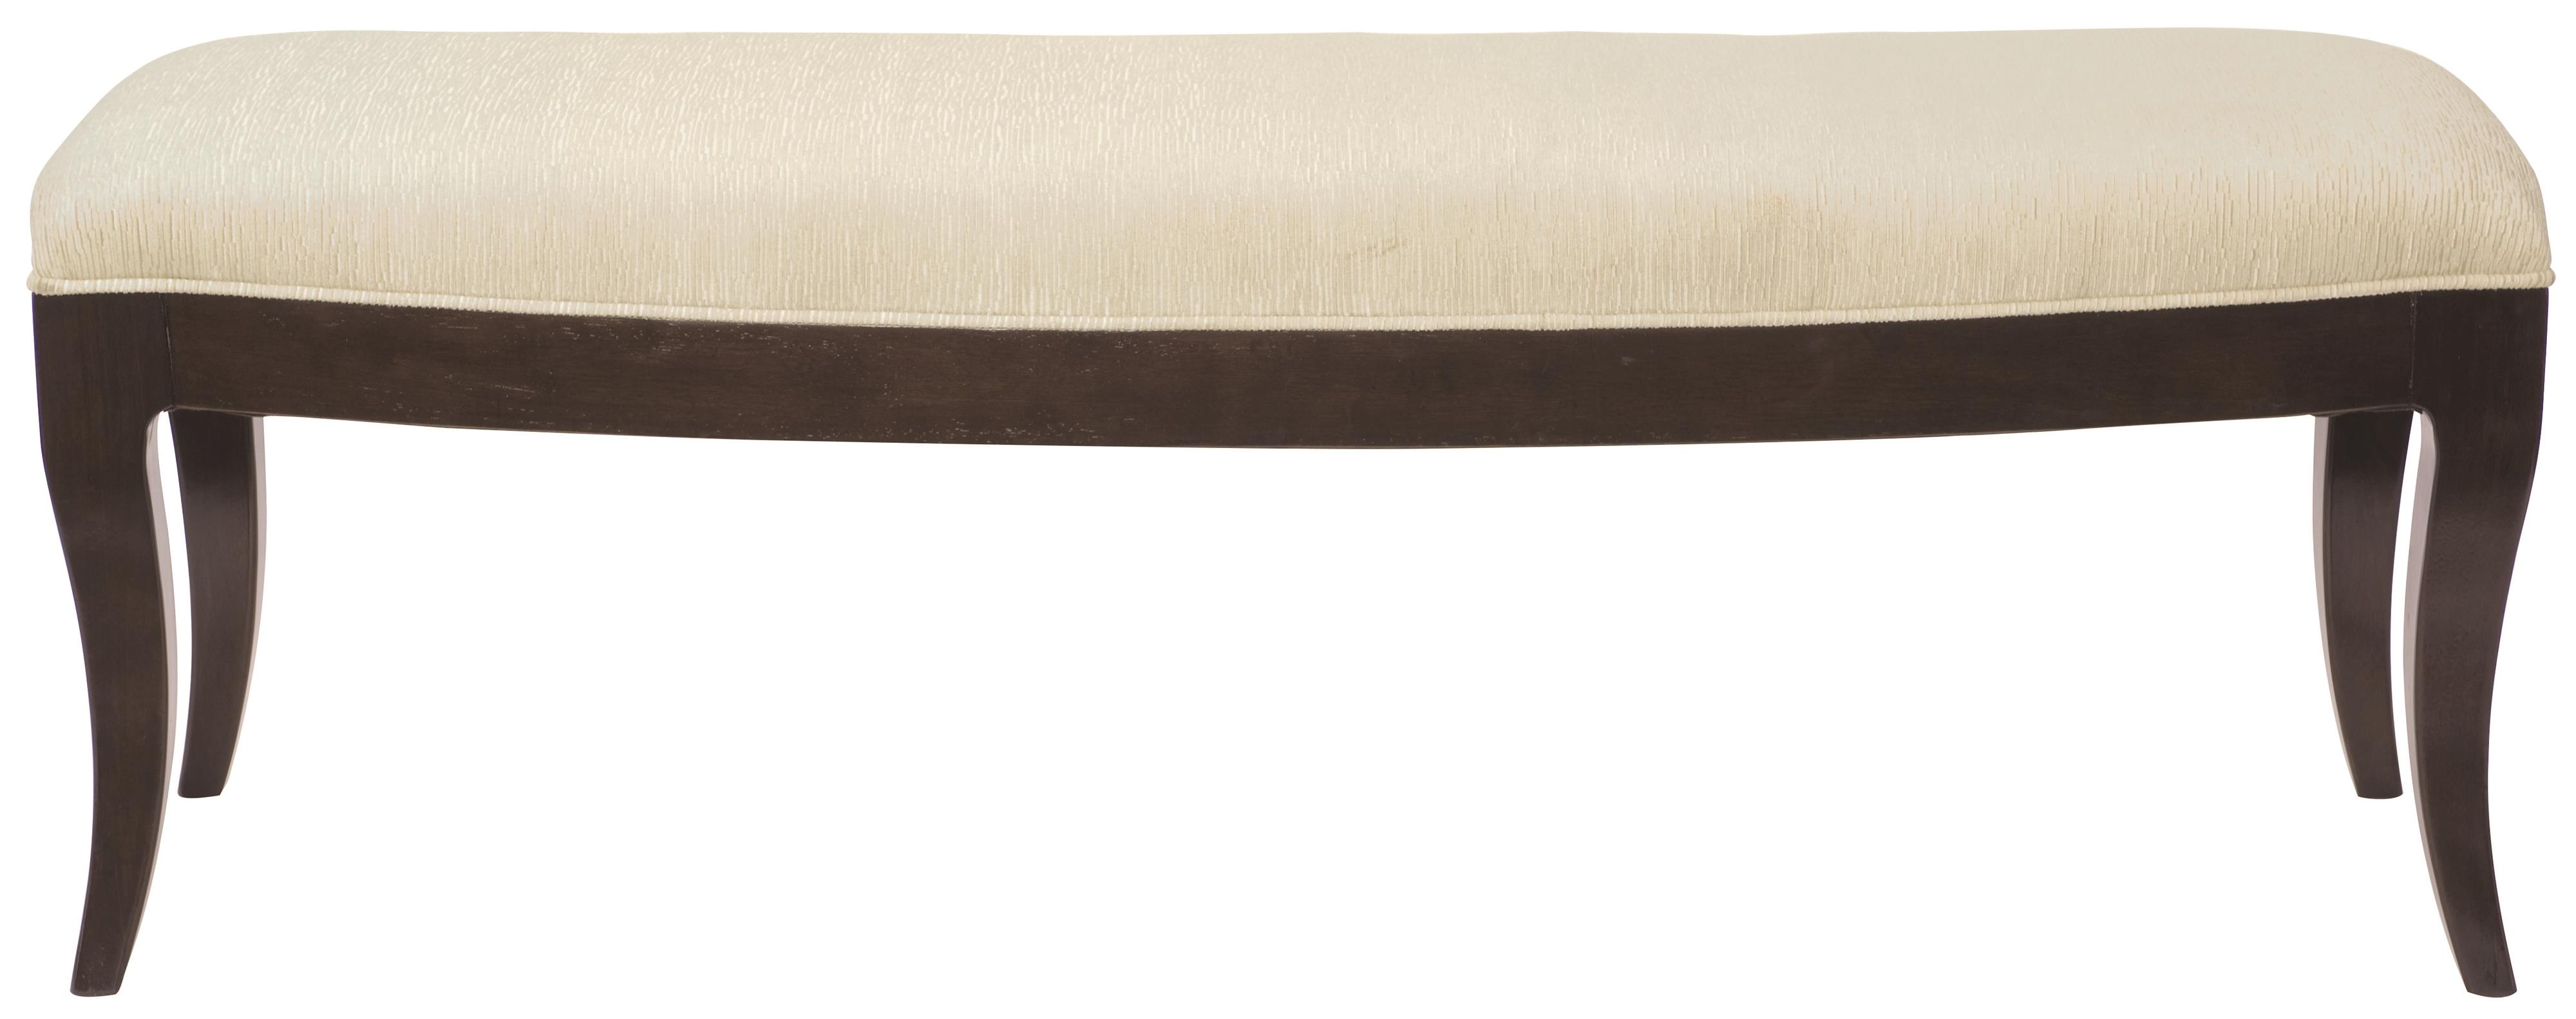 Bernhardt Miramont Bench - Item Number: 360-508